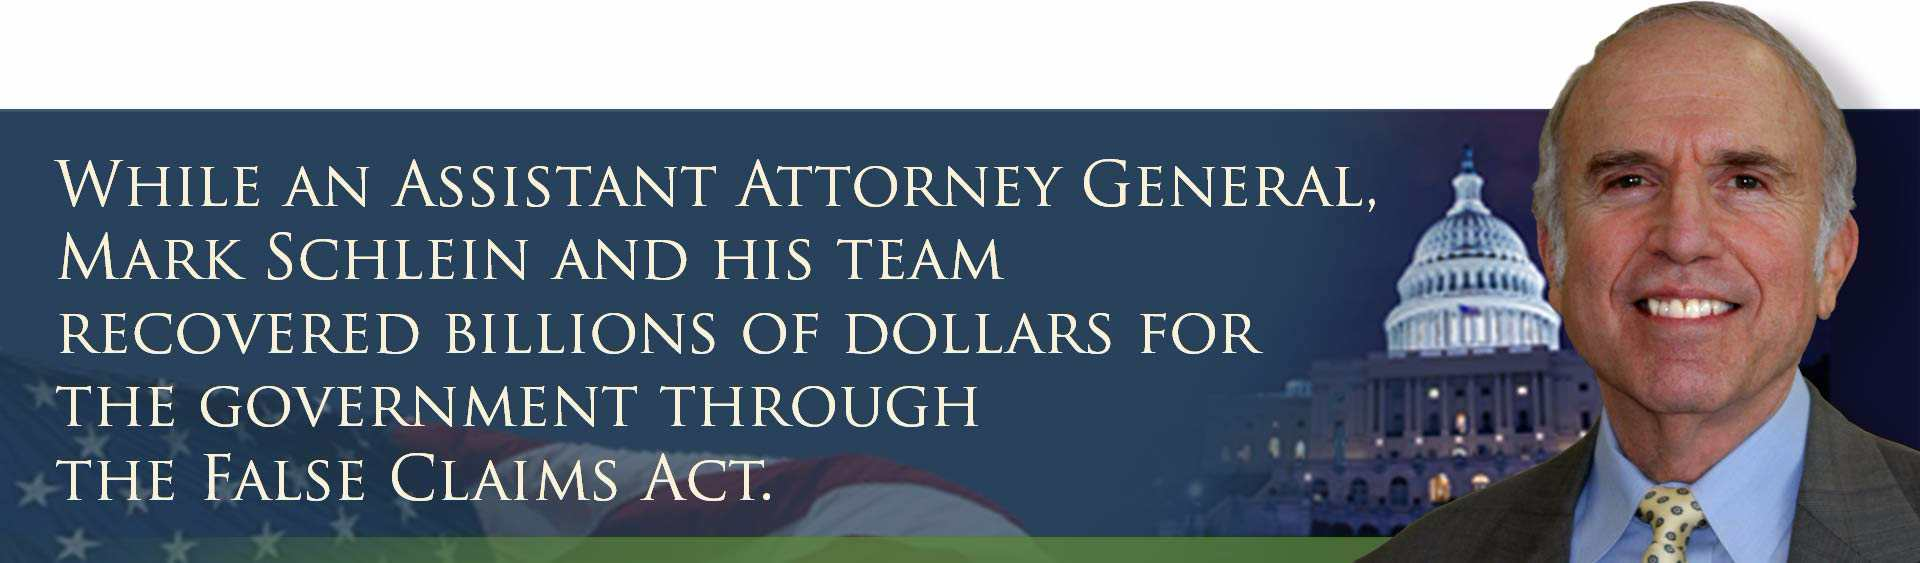 While an Assistant Attorney General, Mark Schlein and his team recovered billions of dollars for the government through the False Claims Act.